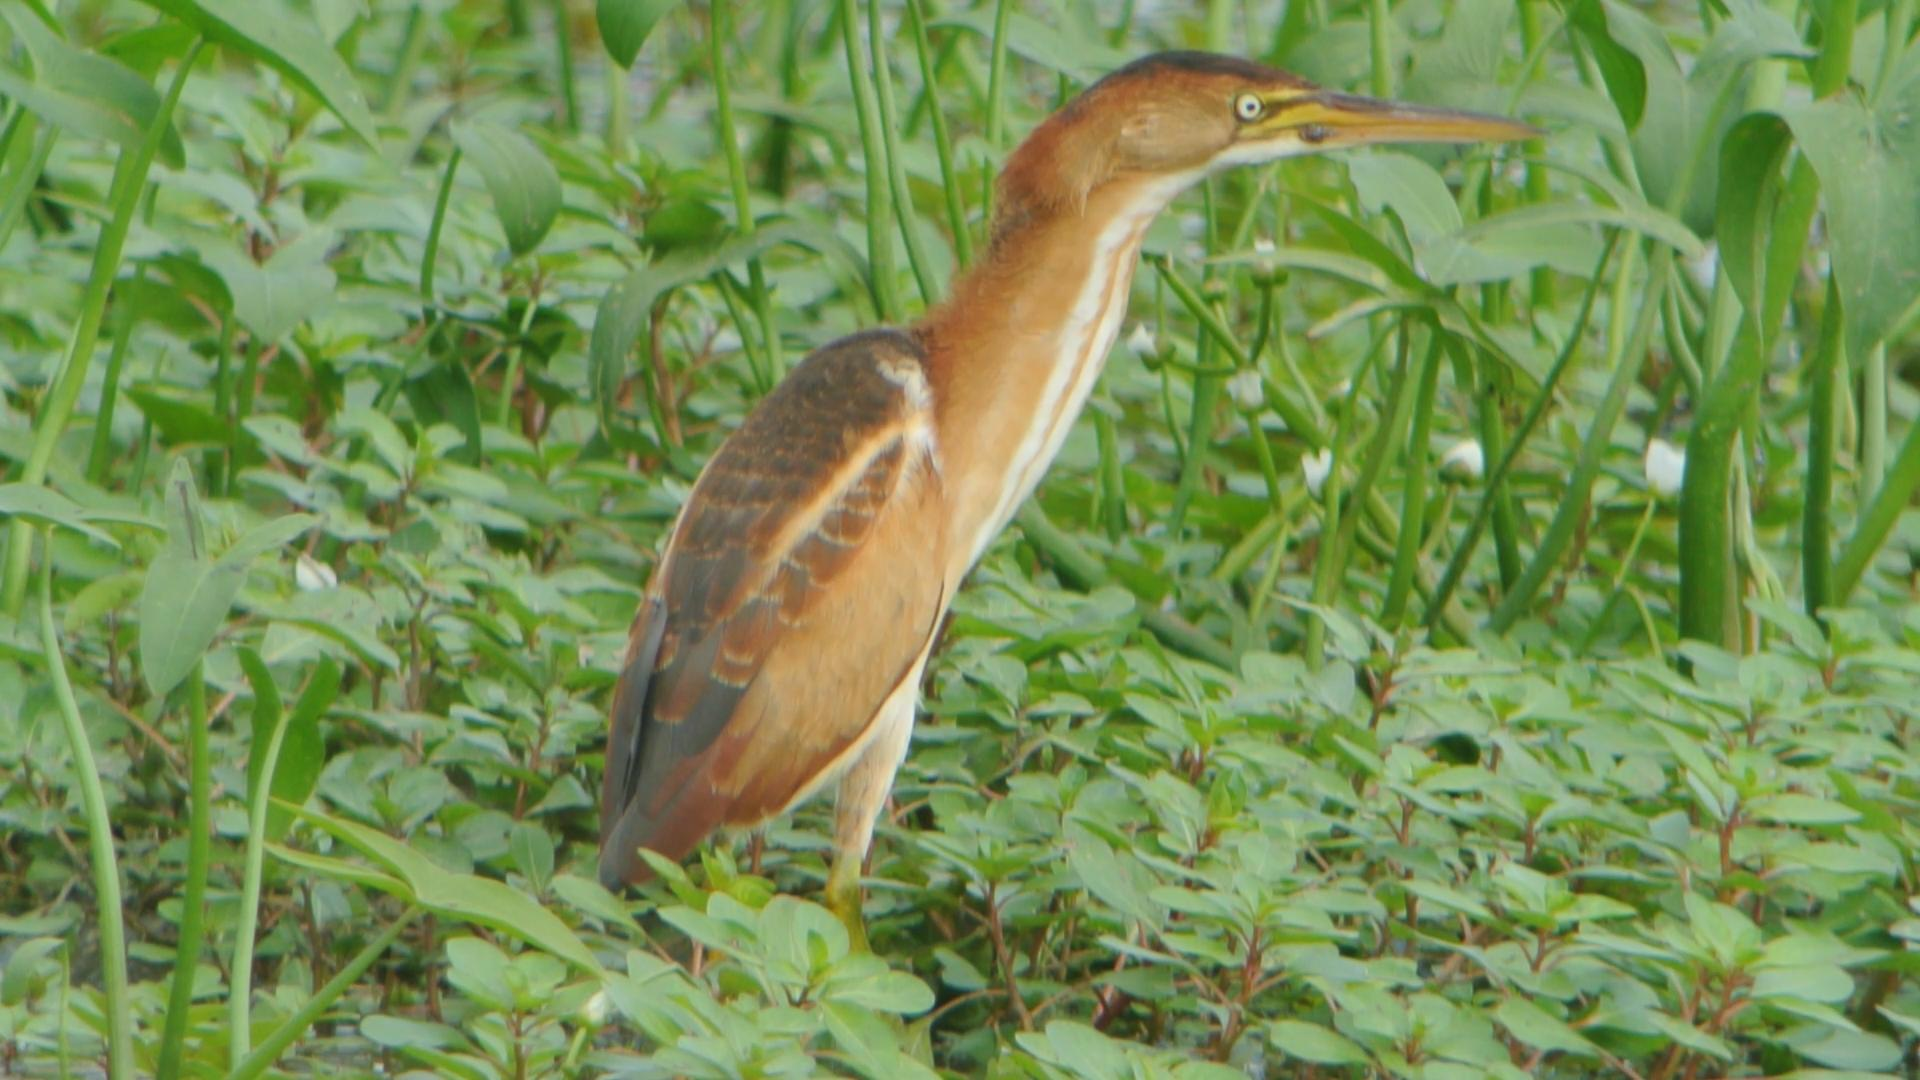 File:Least Bittern - juvenile (7932134506).jpg - Wikimedia Commons